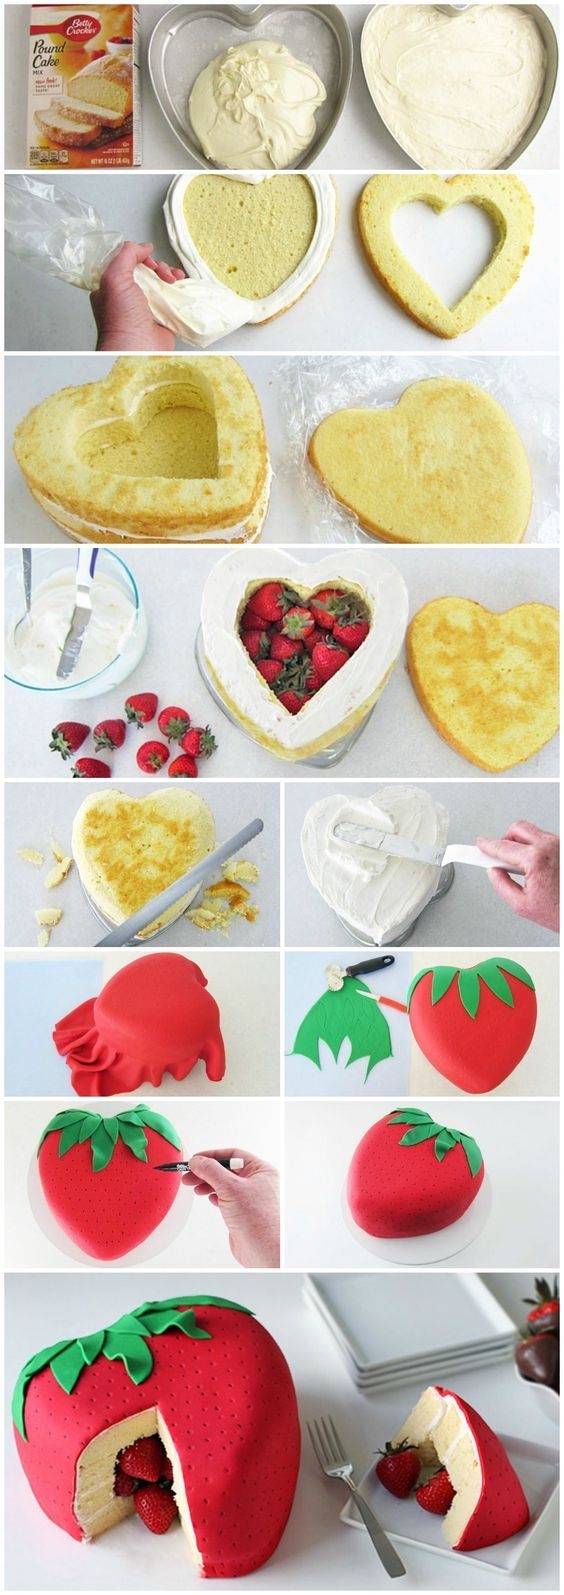 Strawberry Surprise Cake!! I think I'd core the strawberries first before putting them in the cake.